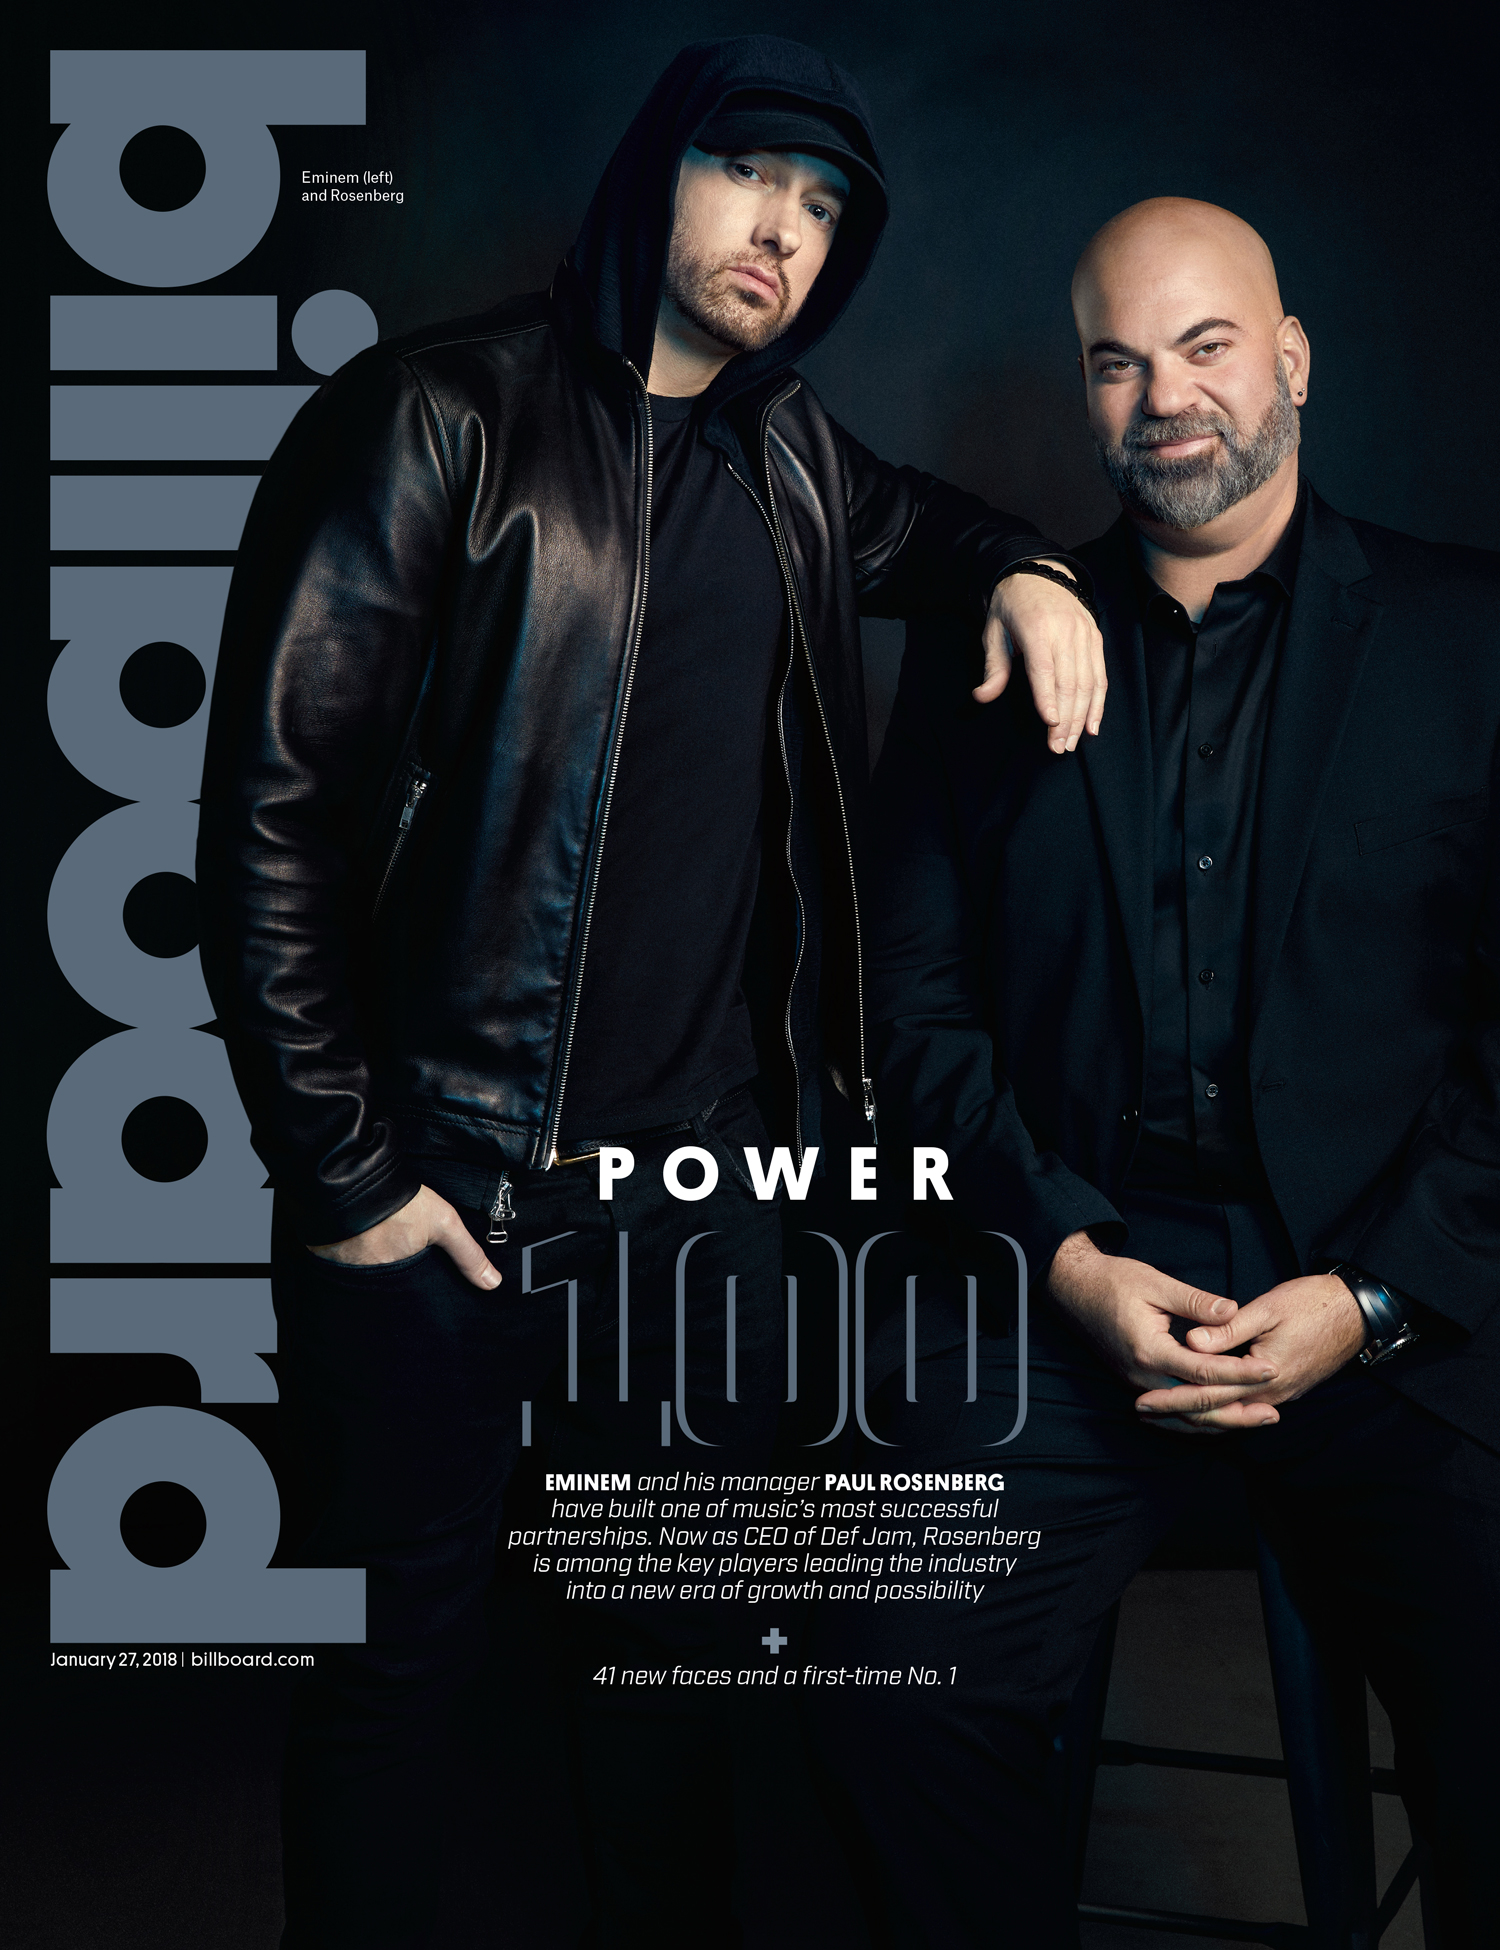 eminem paul rosenberg, eminem billboard interview, paul rosenberg def jam